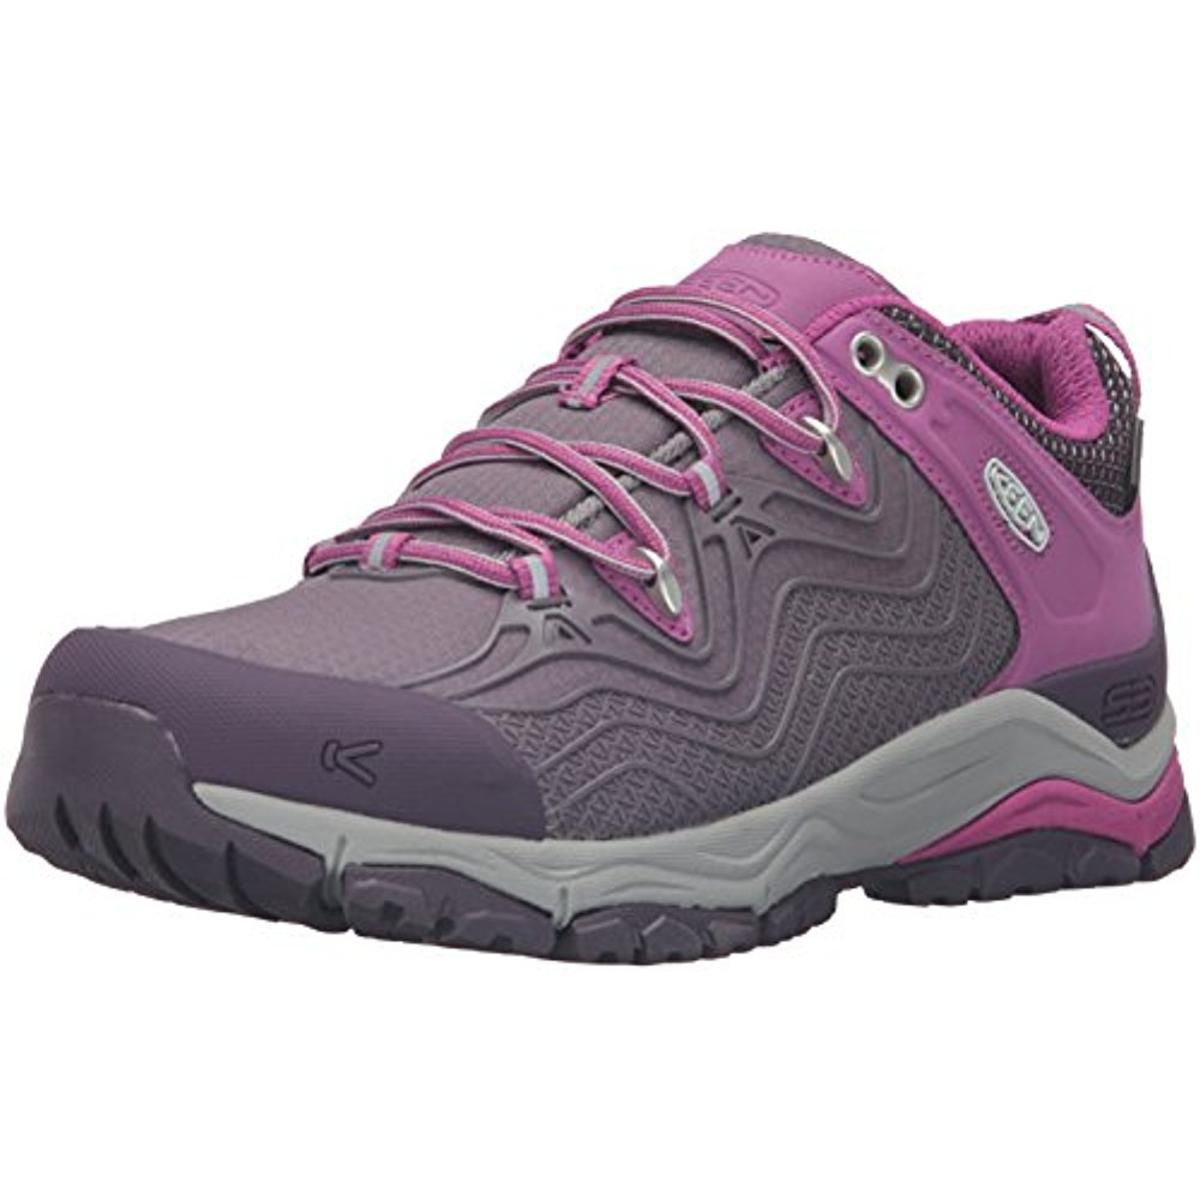 Keen Womens Aphlex Waterproof Colorblock Hiking, Trail Shoes